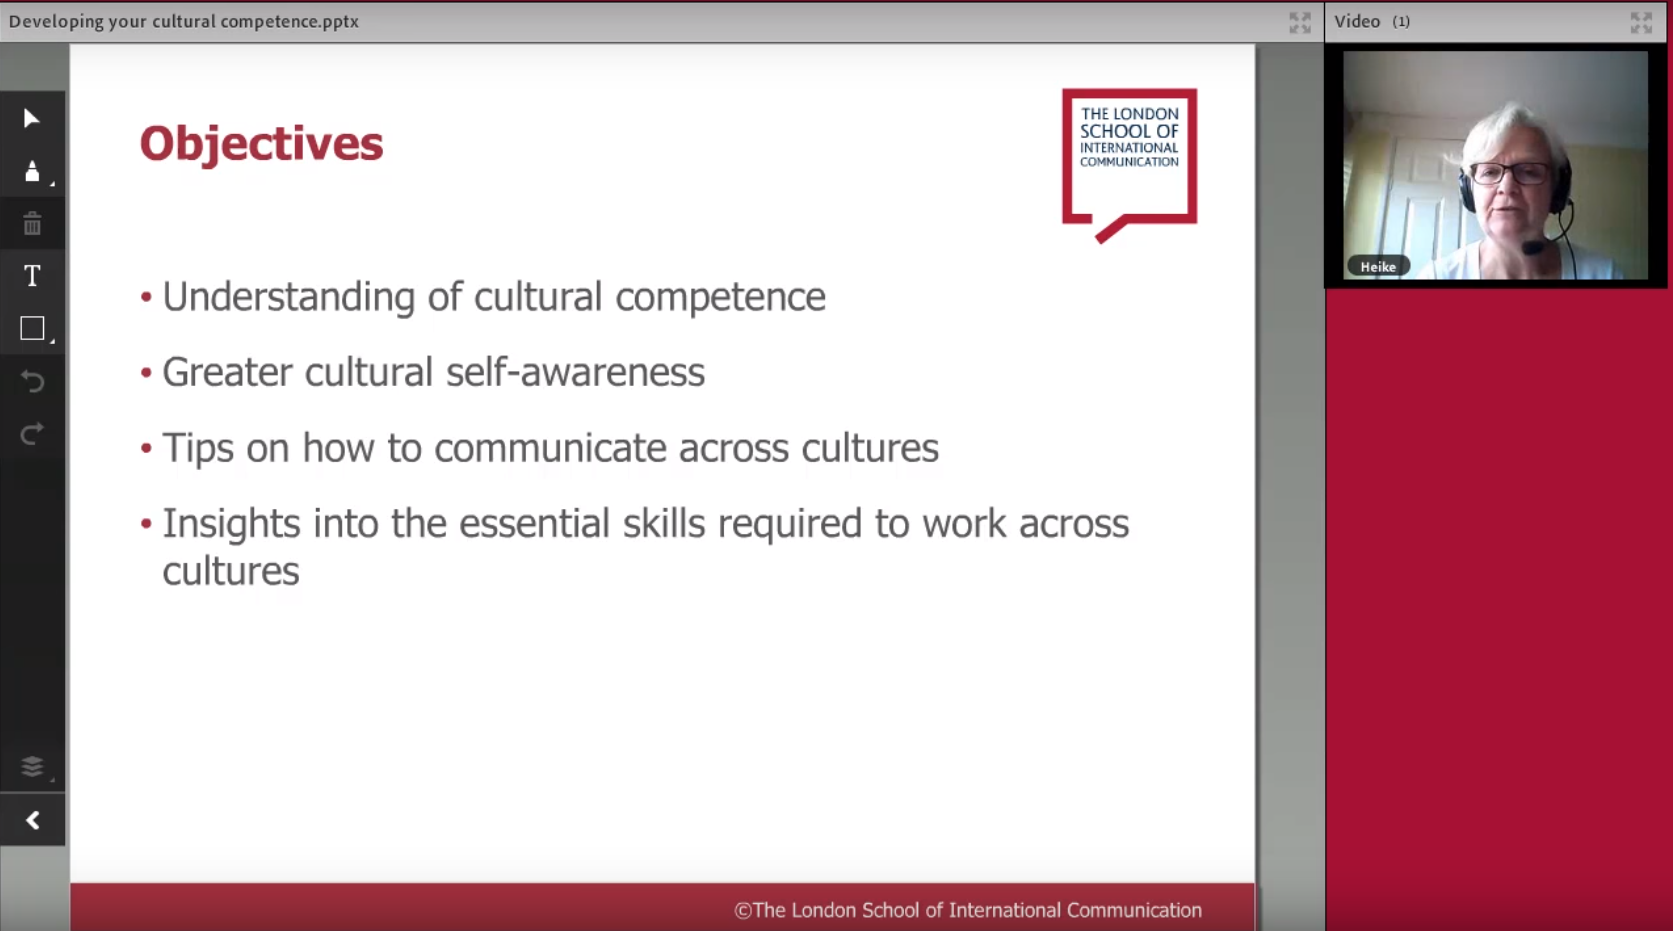 Developing your intercultural competence webinar